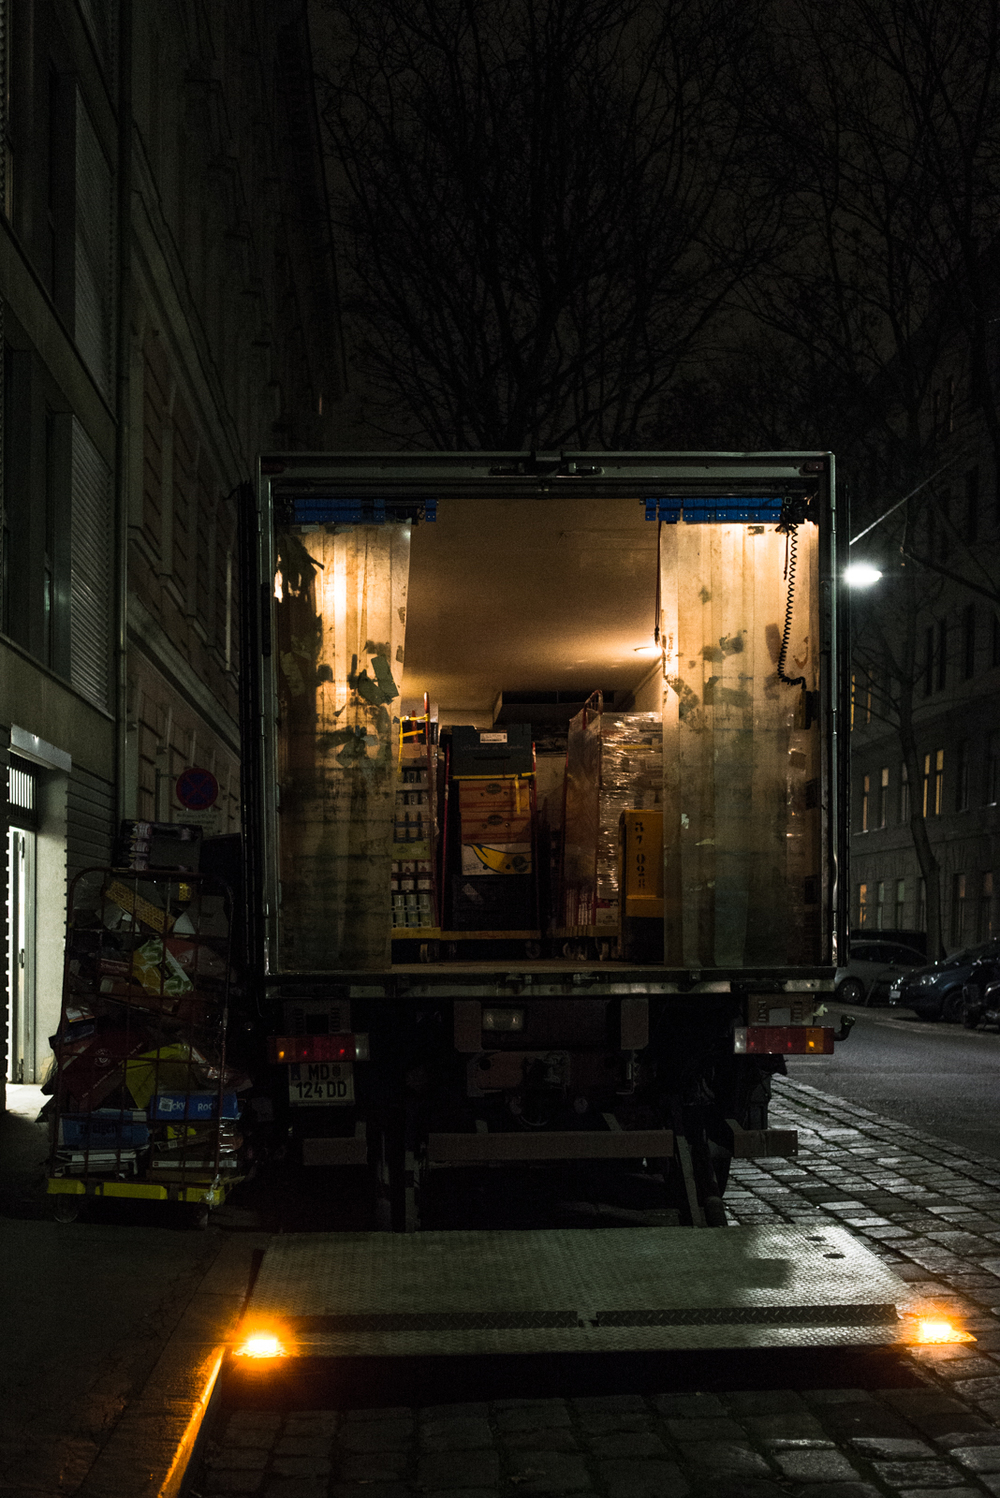 Project 365: #324 - Late night delivery